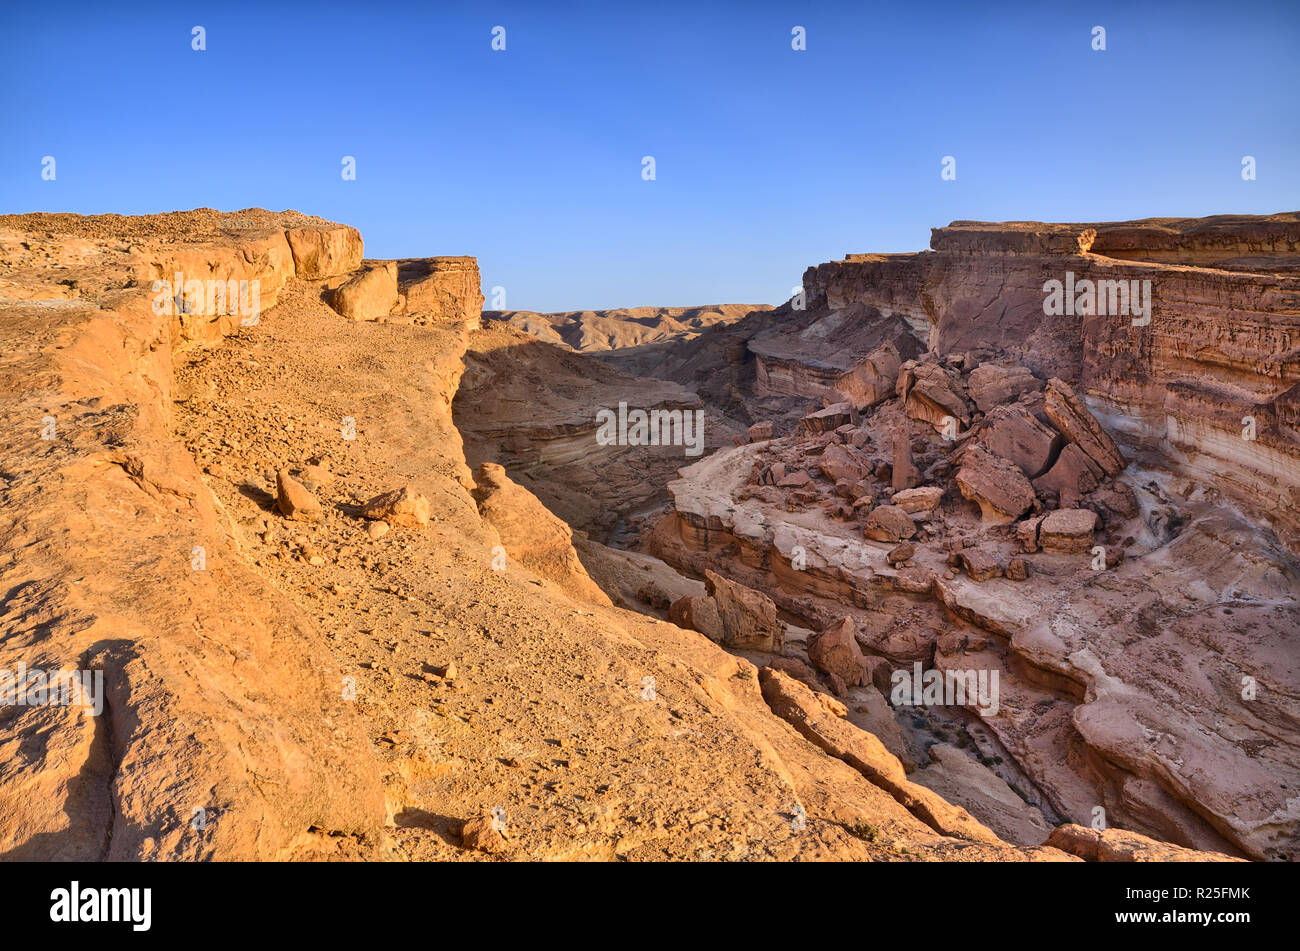 Tamerza Canyon Or Star Wars Canyon Sahara Desert Tunisia Africa Hdr Stock Photo Alamy